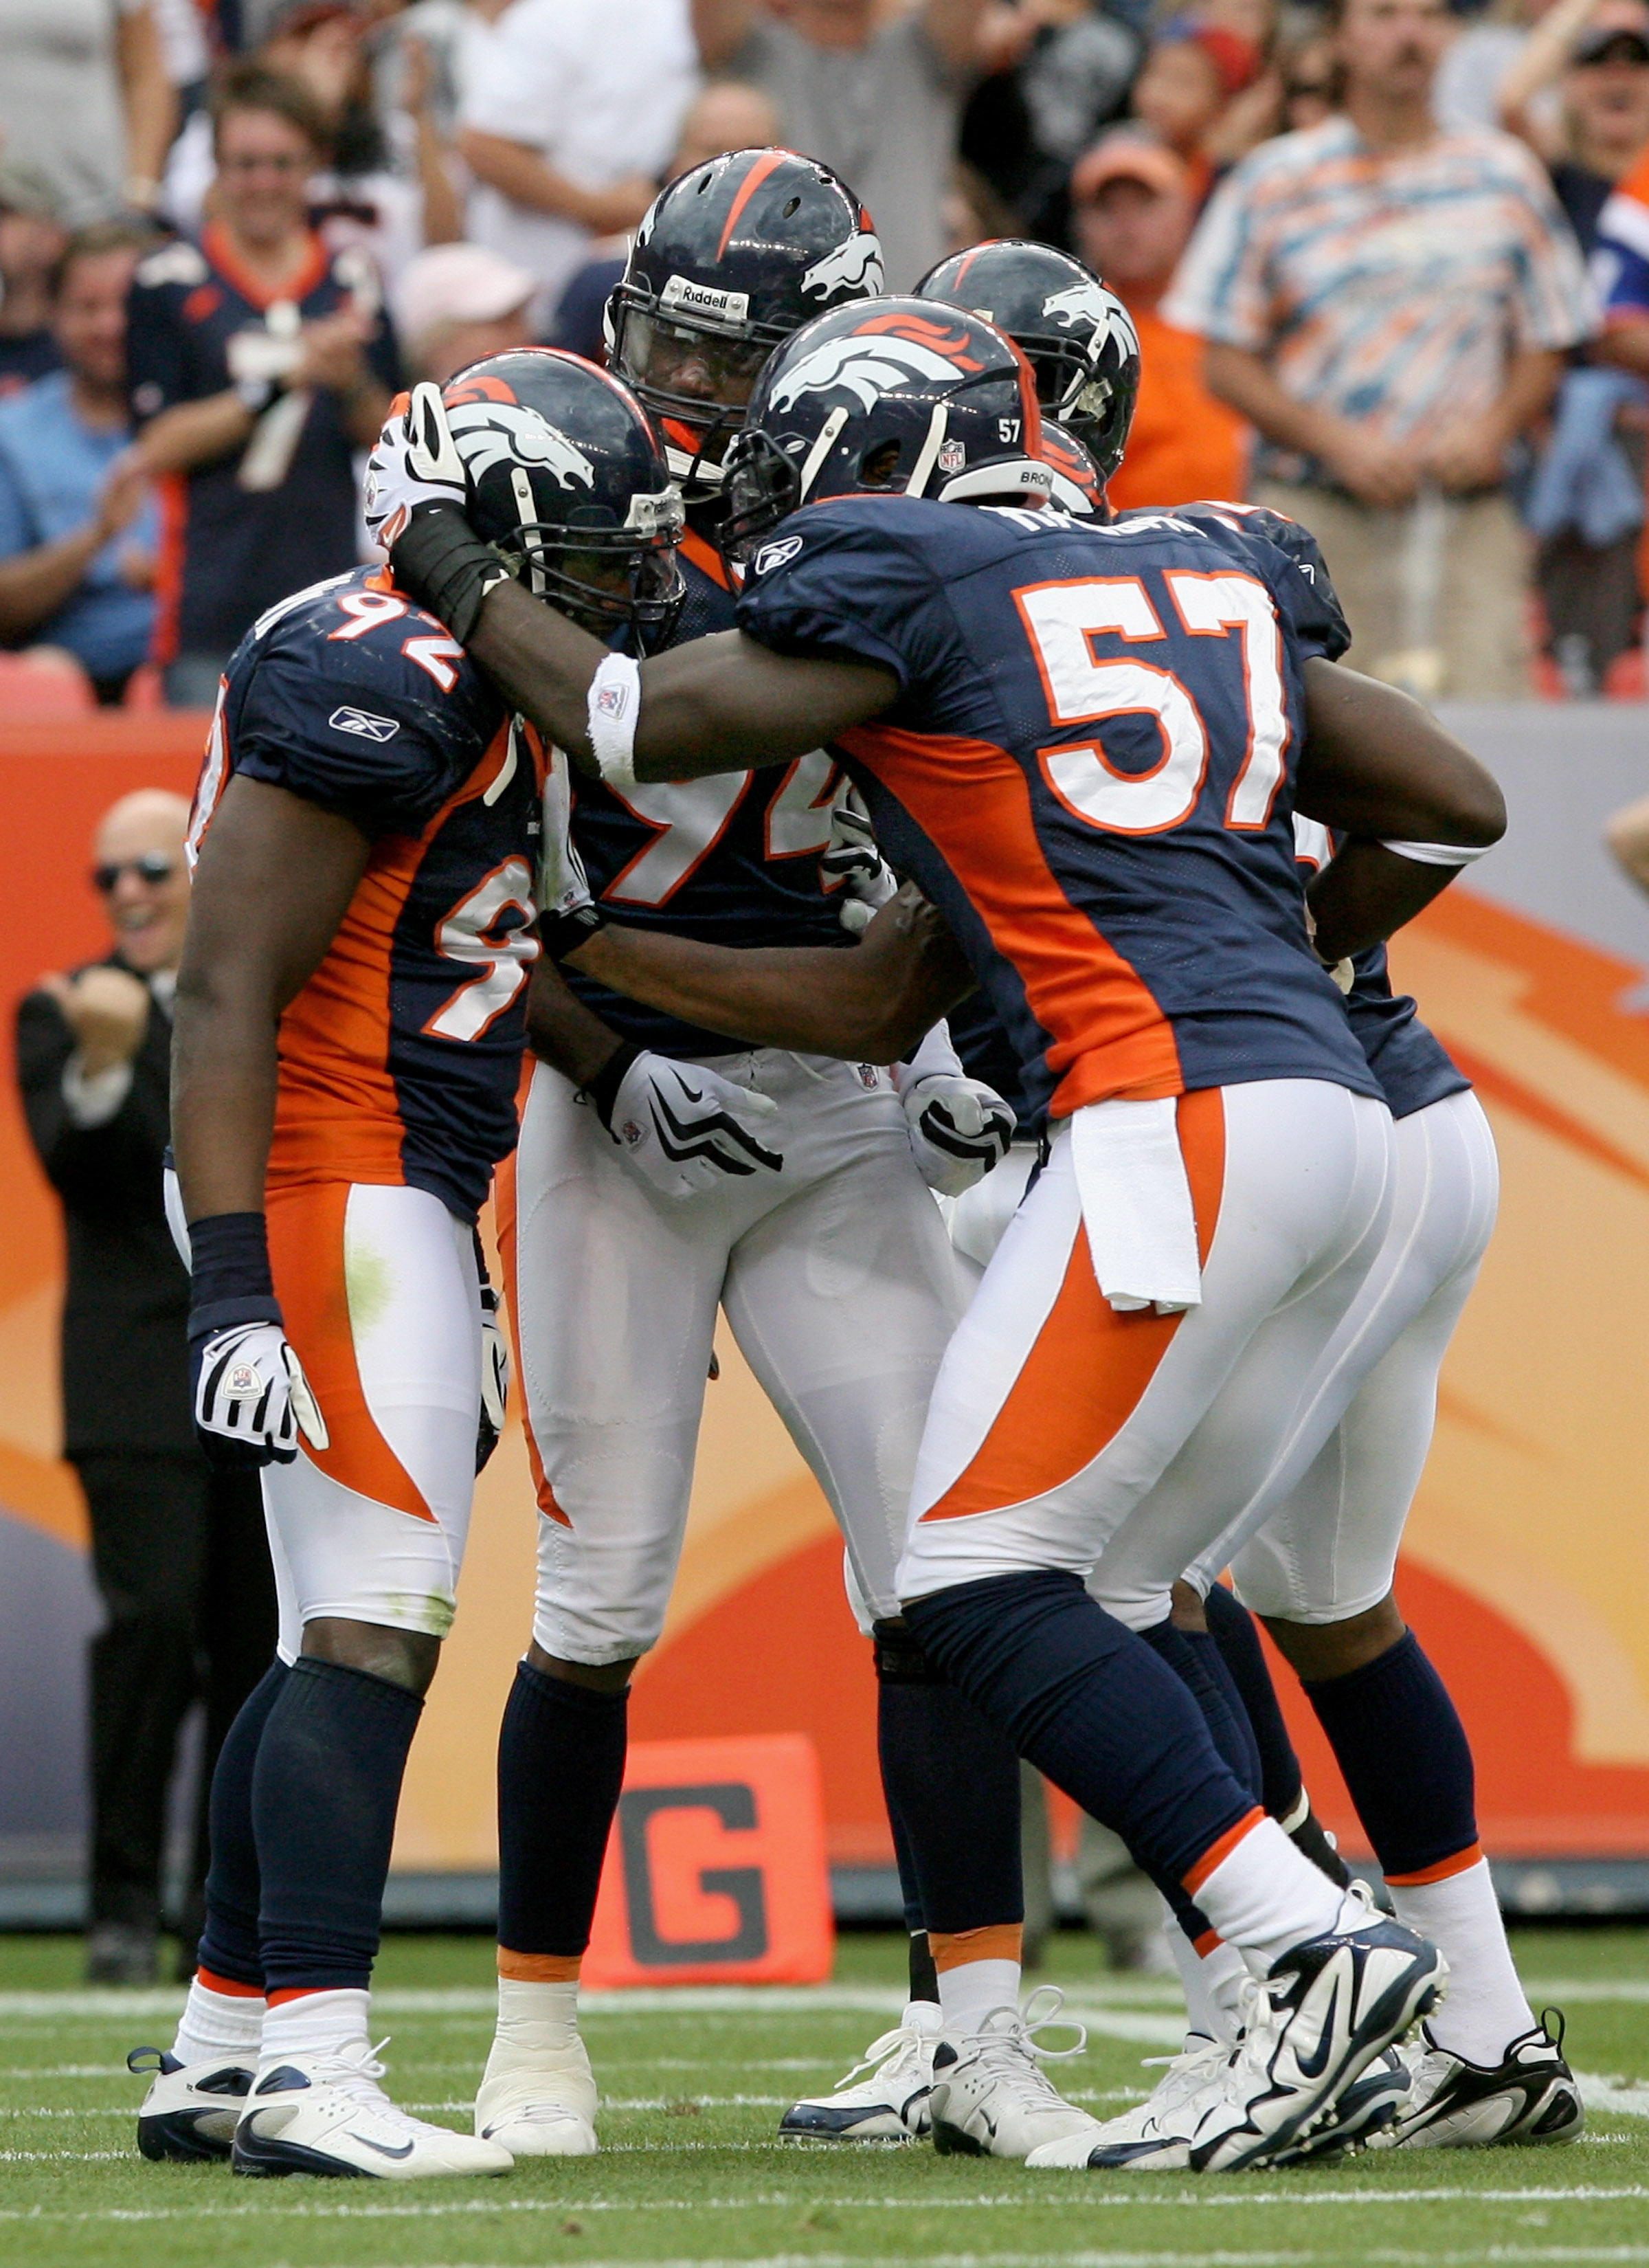 DENVER - SEPTEMBER 20:  Defensive end Elvis Dumervil #92 (L) of the Denver Broncos is congratulated by his teammates after he sacked quarterback Brady Quinn #10 of the Cleveland Browns in the fourth quarter during NFL action at Invesco Field at Mile High